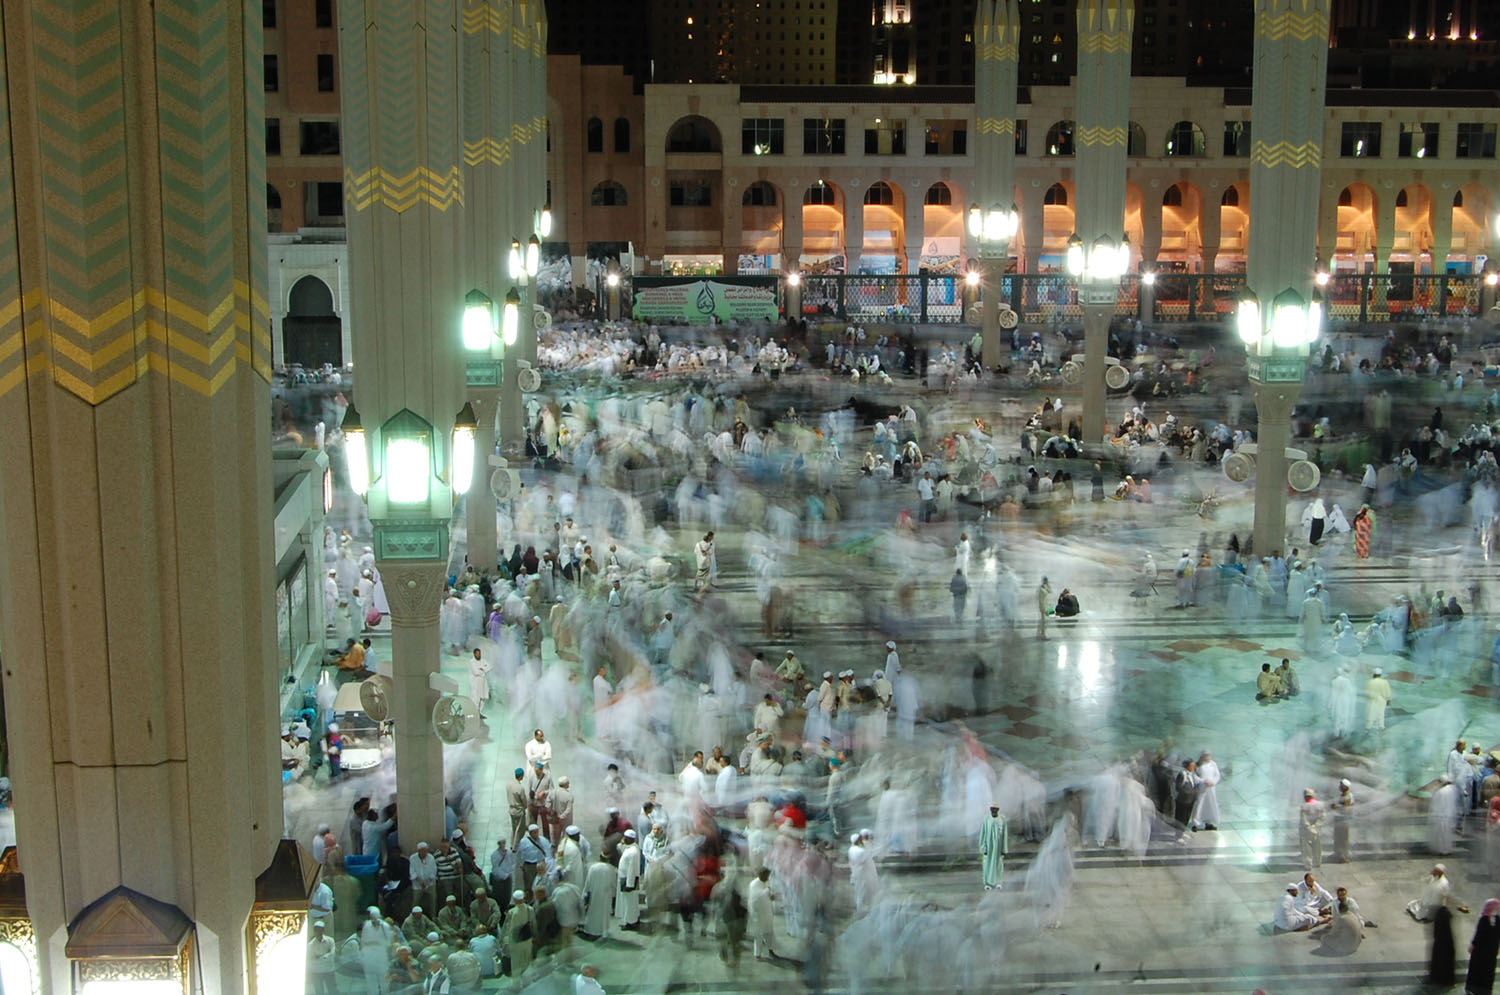 As the time for Hajj draws closer, the crowds in Madinah grow exponentially.